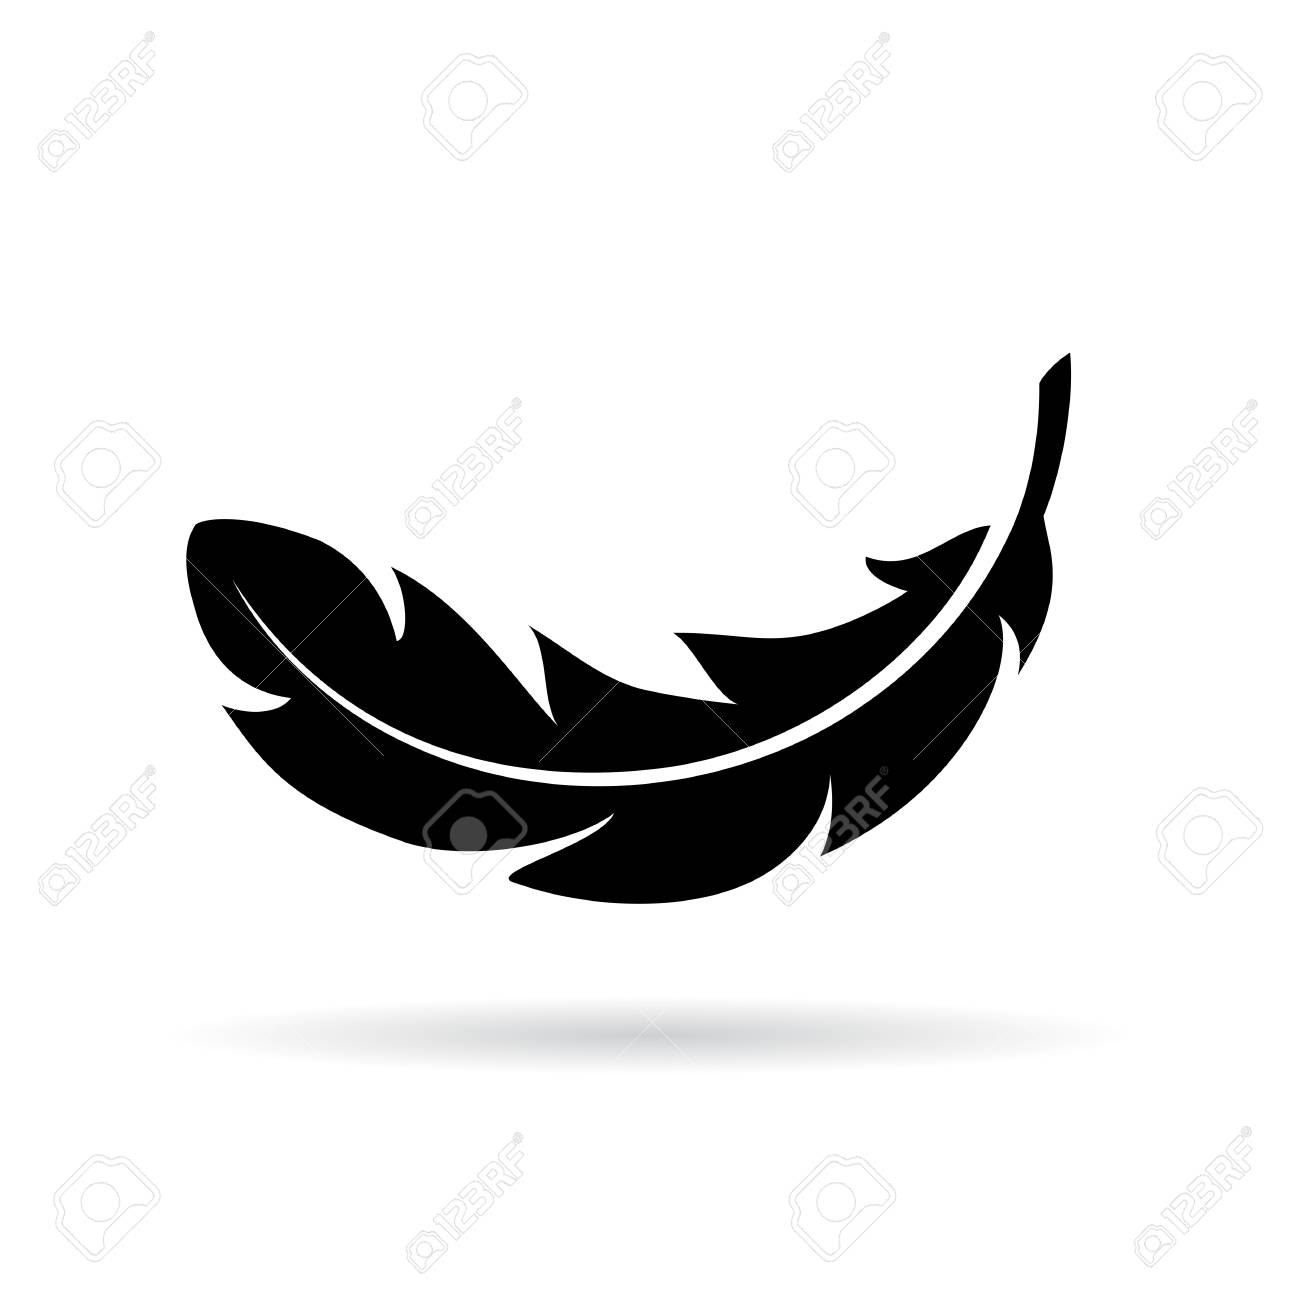 feather vector icon royalty free cliparts vectors and stock rh 123rf com feather vector free download feather vector free download